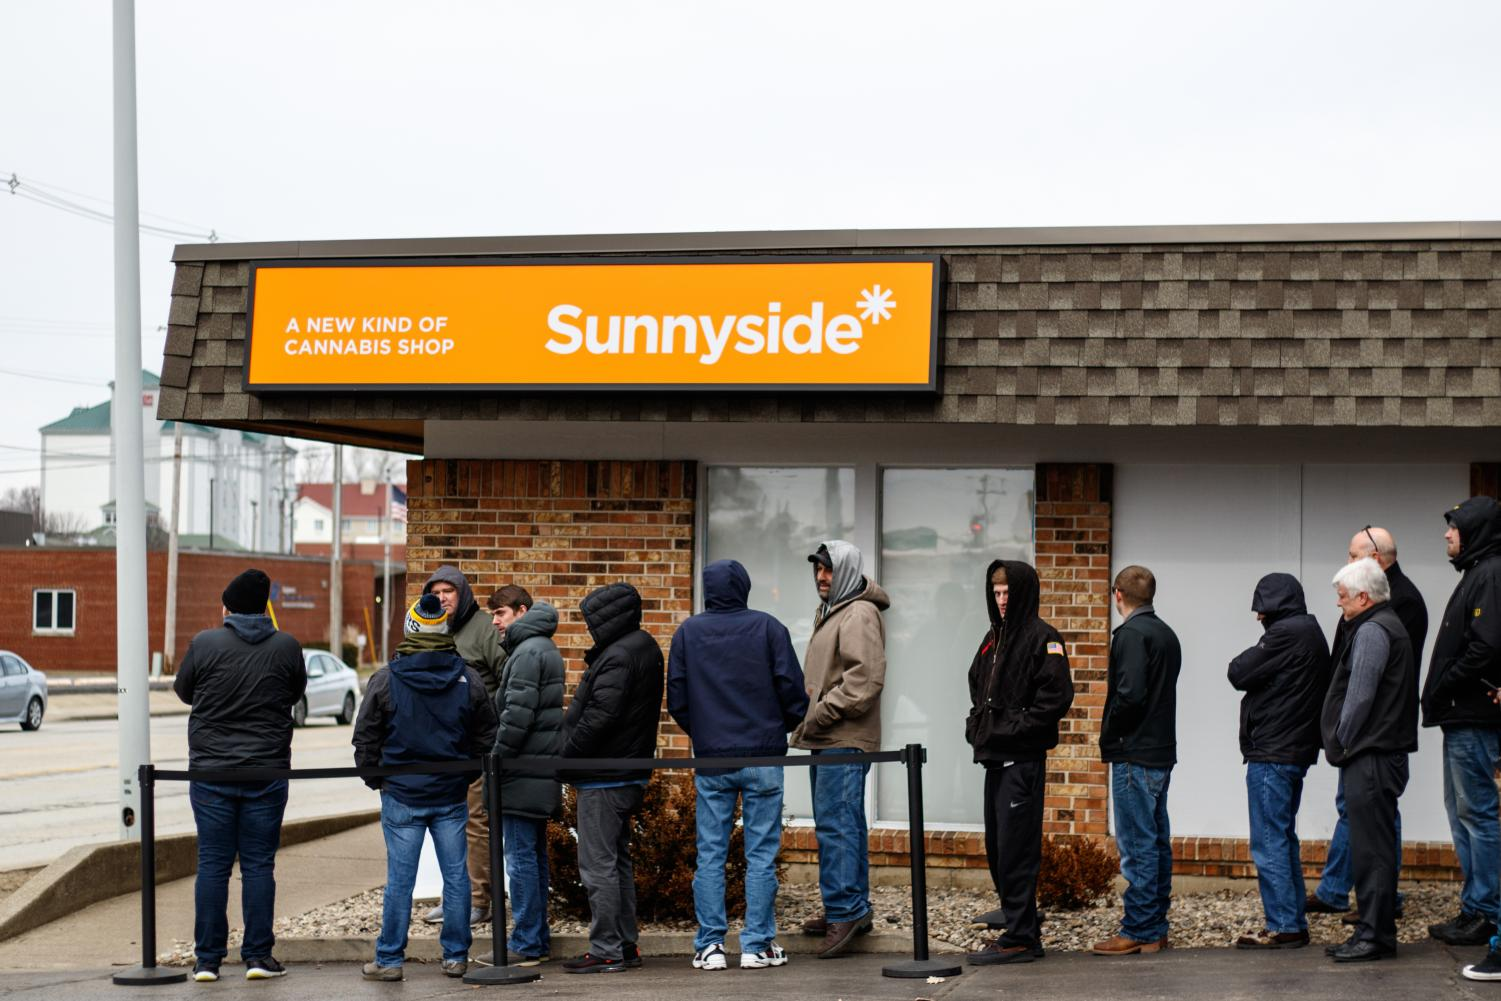 People wait in line at Sunnyside Dispensary on Jan. 22, a cannabis dispensary located on 1704 S. Neil St. Following the legalization of recreational marijuana in the state of Illinois, the C-U community has taken a variety of stances on the topic.